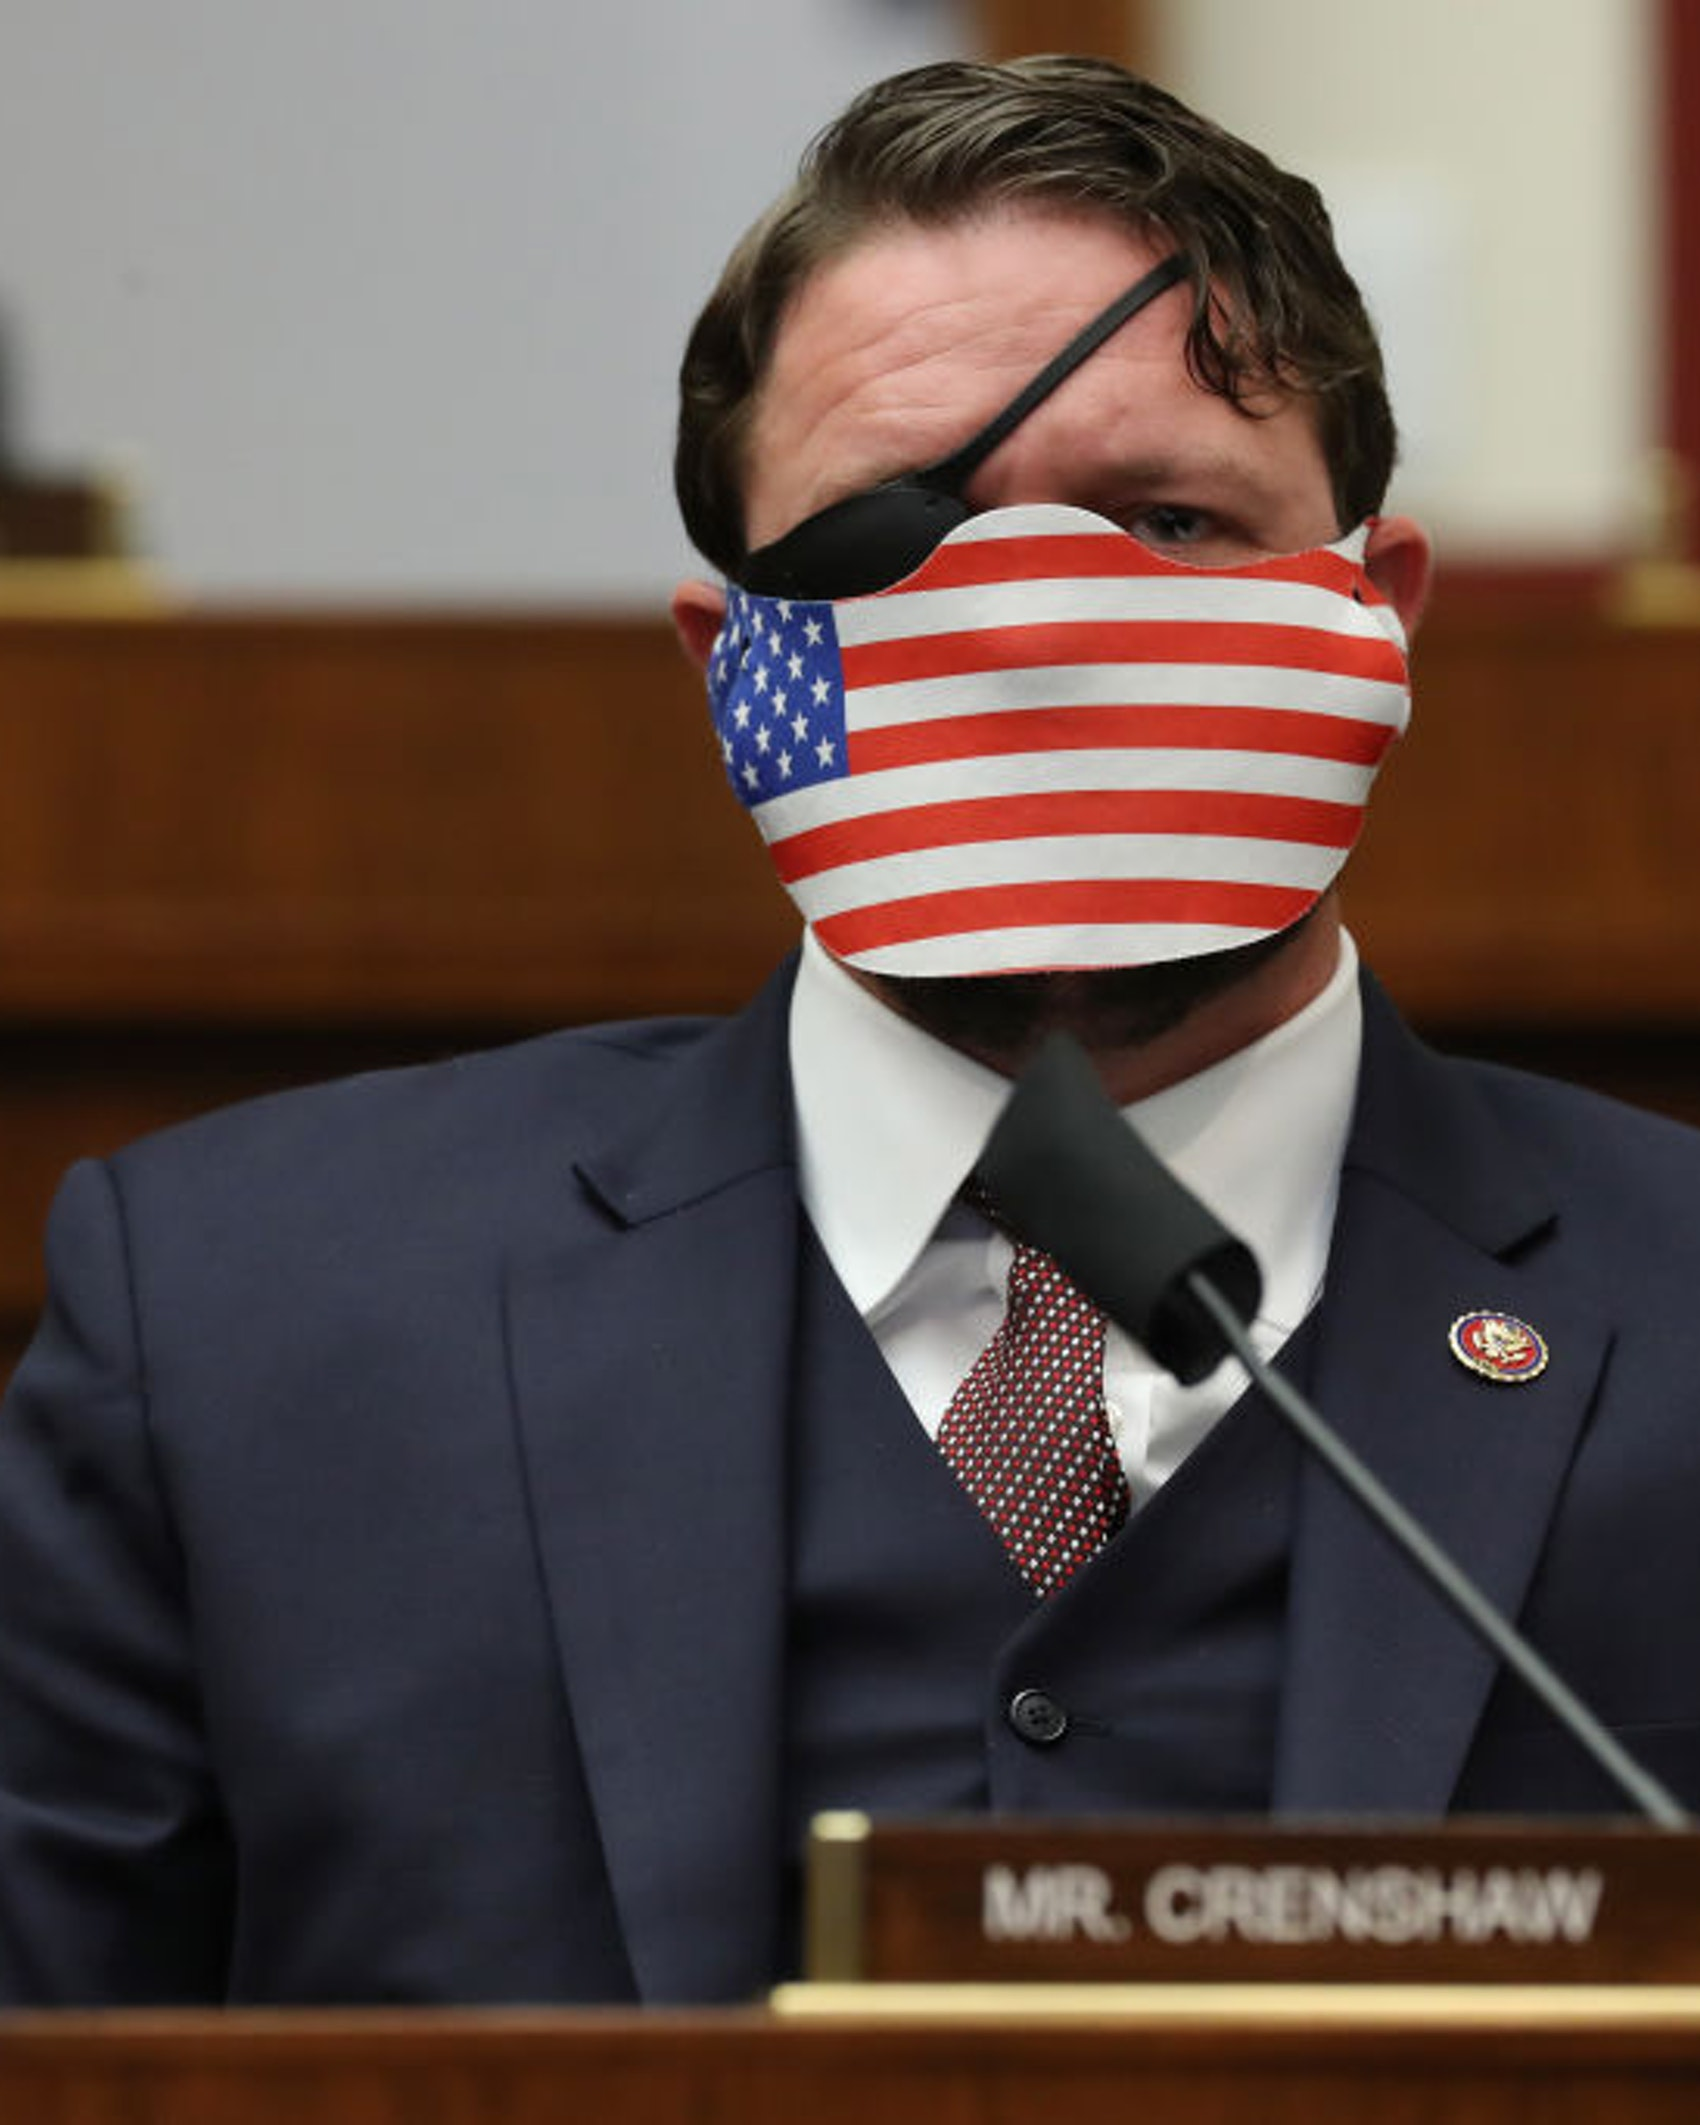 WASHINGTON, DC - SEPTEMBER 17: Wearing a face mask to reduce the risk posed by the coronavirus, House Homeland Security Committee member Rep. Dan Crenshaw (R-TX) attends a hearing on 'worldwide threats to the homeland' in the Rayburn House Office Building on Capitol Hill September 17, 2020 in Washington, DC. Committee Chairman Bennie Thompson (D-MS) said he would issue a subpoena for acting Homeland Security Secretary Chad Wolf after he did not show for the hearing. An August Government Accountability Office report found that Wolf's appointment by the Trump Administration, which has regularly skirted the Senate confirmation process, was invalid and a violation of the Federal Vacancies Reform Act. (Photo by Chip Somodevilla/Getty Images)